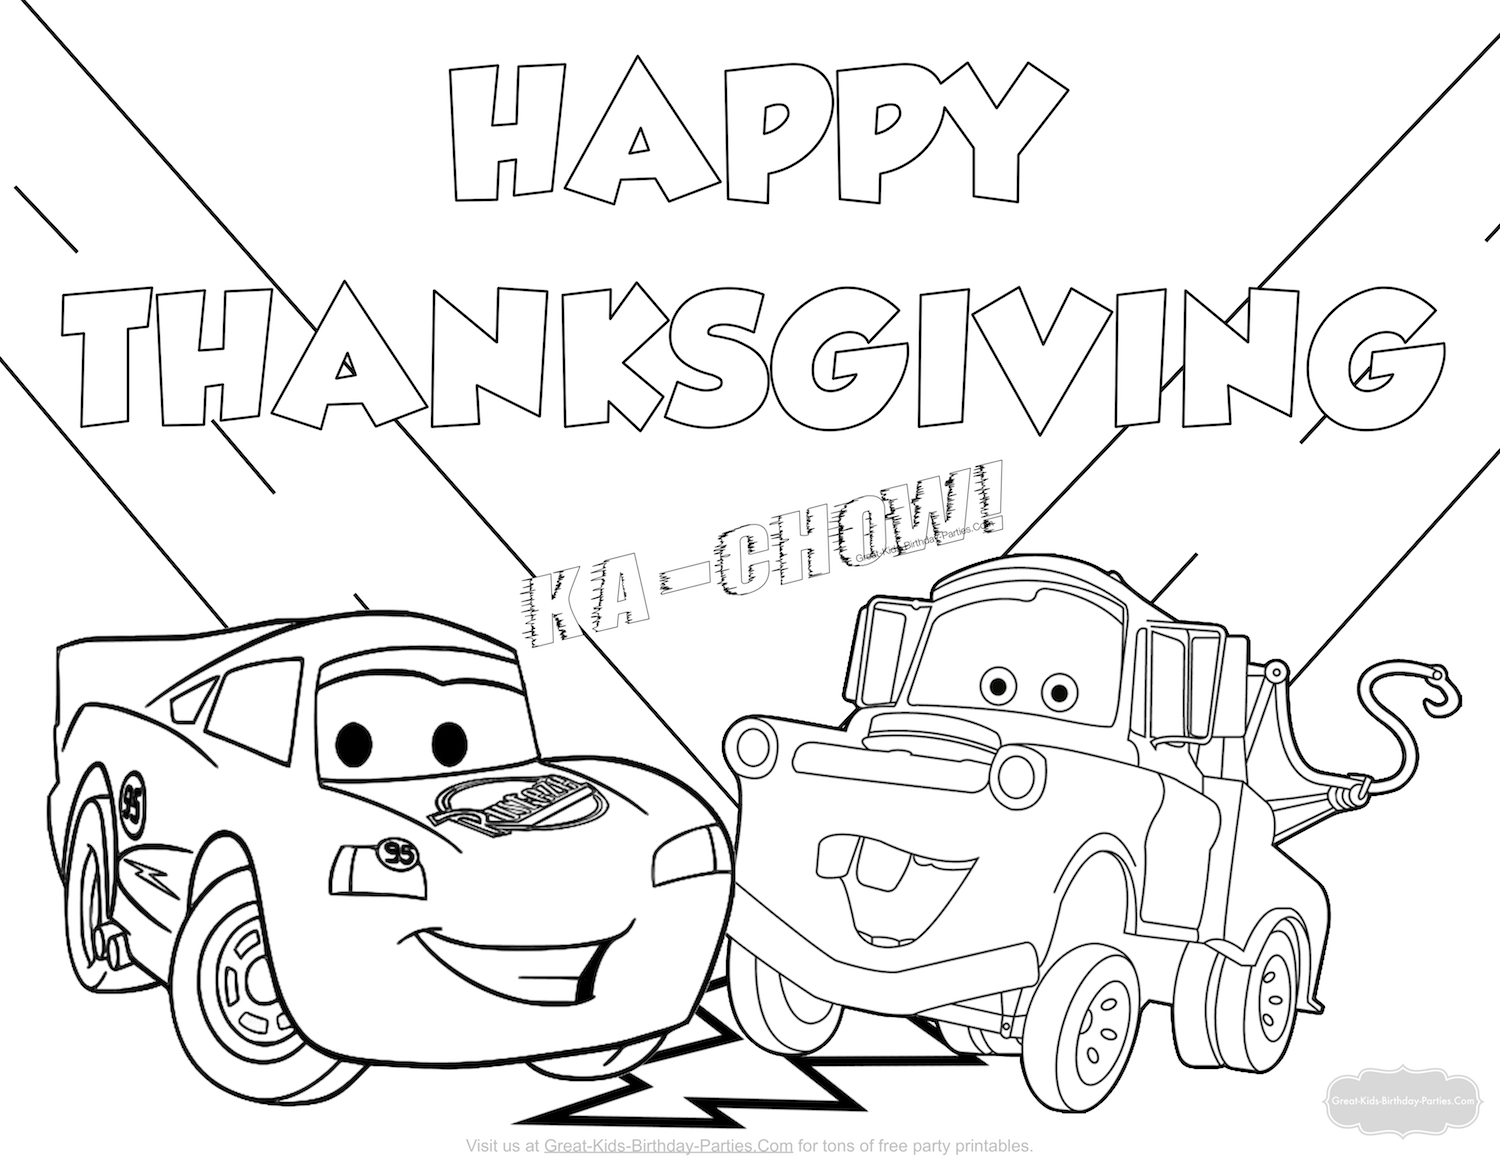 Thanksgiving Coloring Pages Thanksgiving Coloring Sheets Thanksgiving Coloring Pages Name Coloring Pages